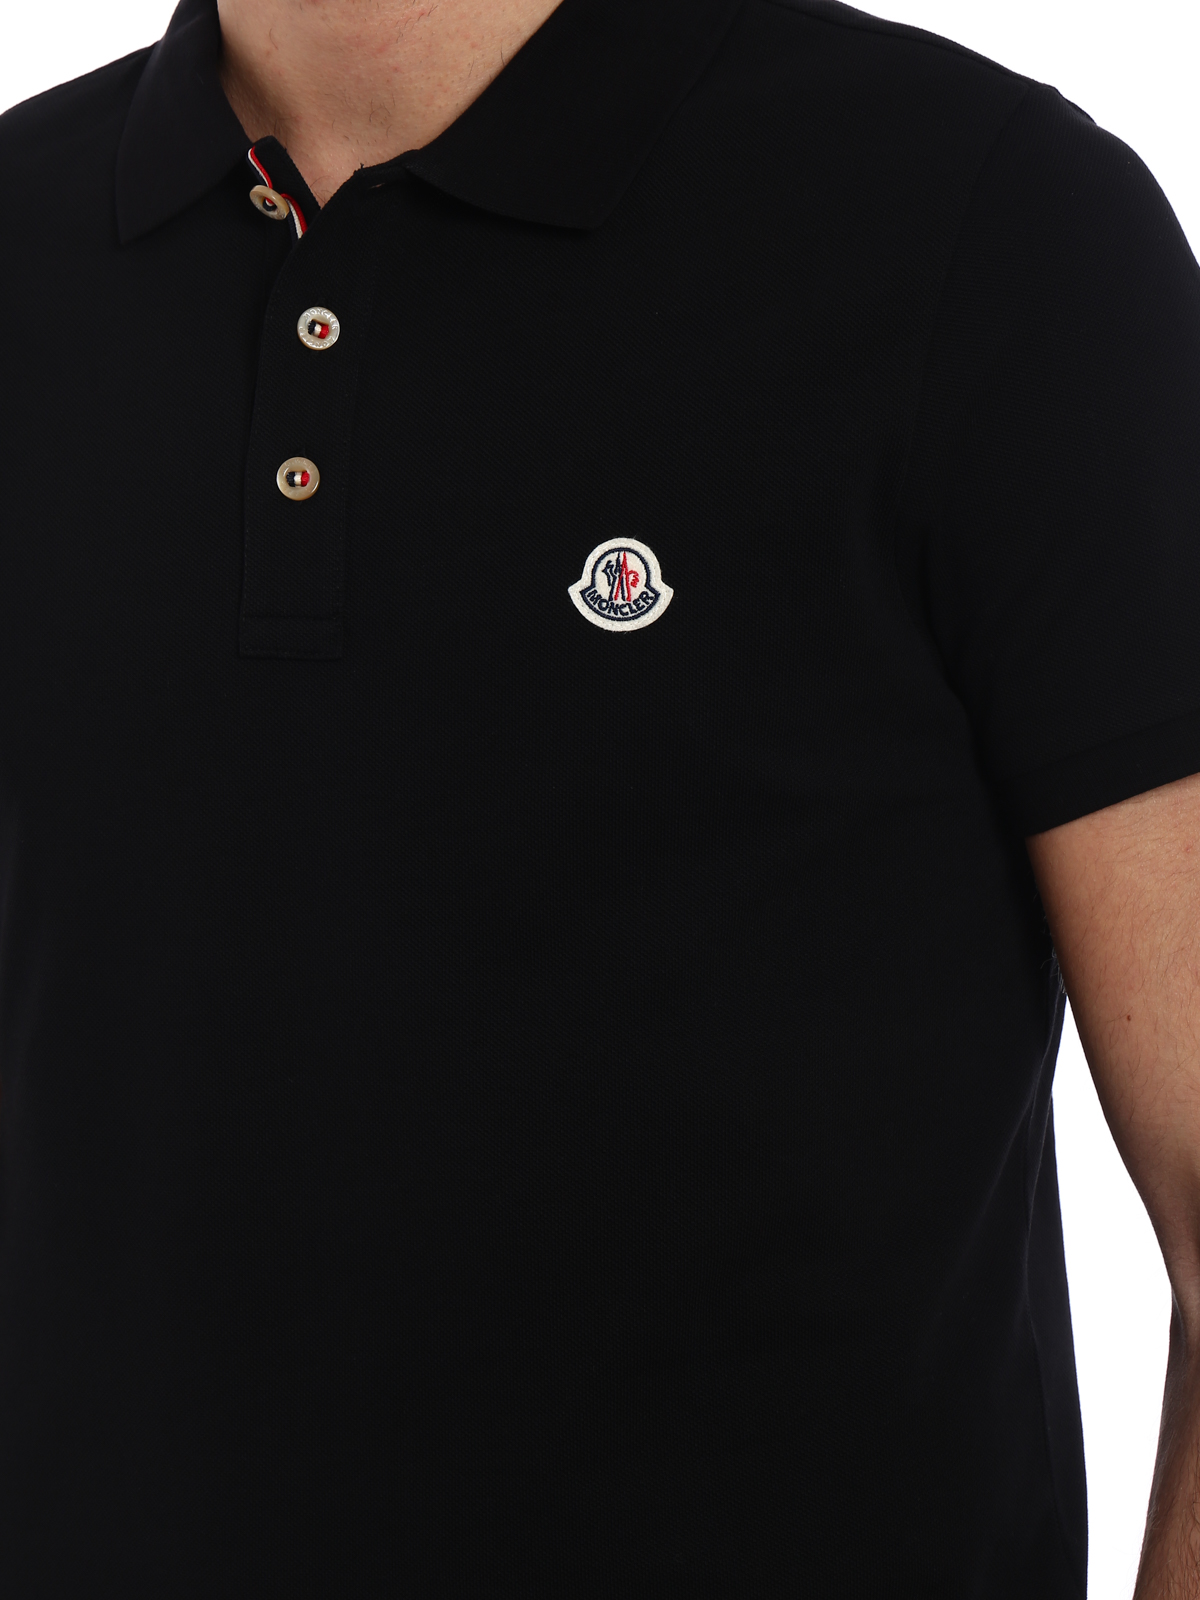 MONCLER buy online Tricolour placket black polo shirt